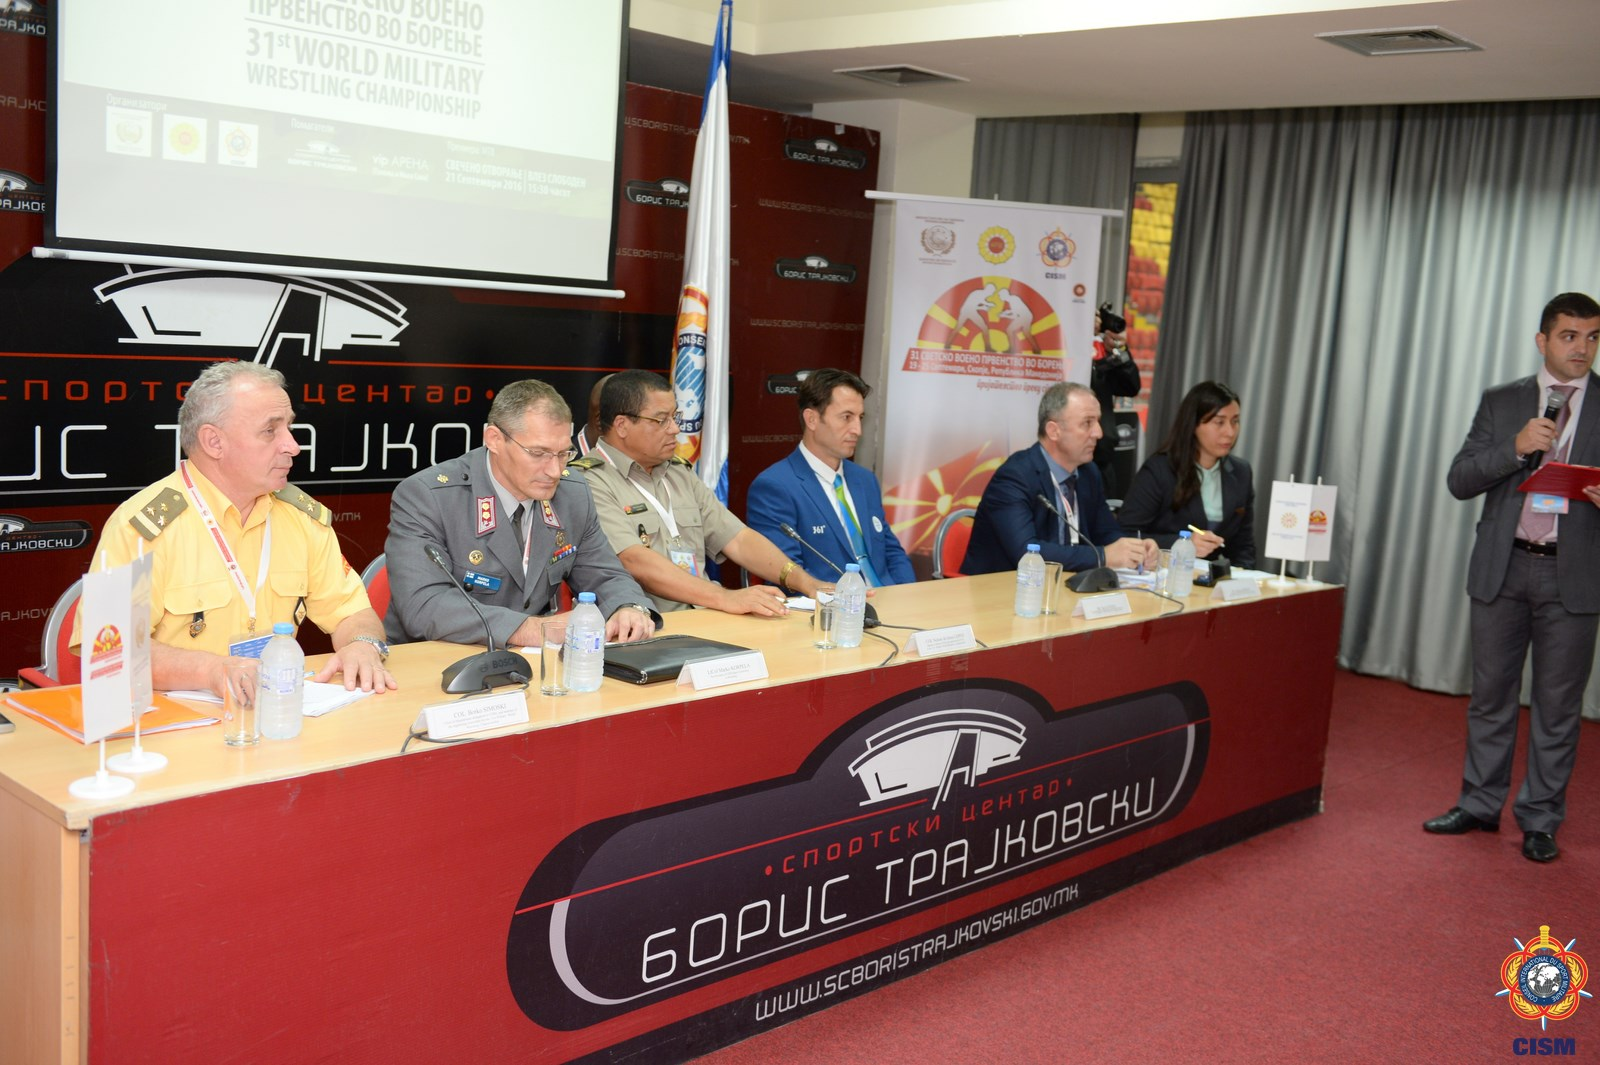 31st WMC Wrestling – Skopje (MKD) – Press Conference